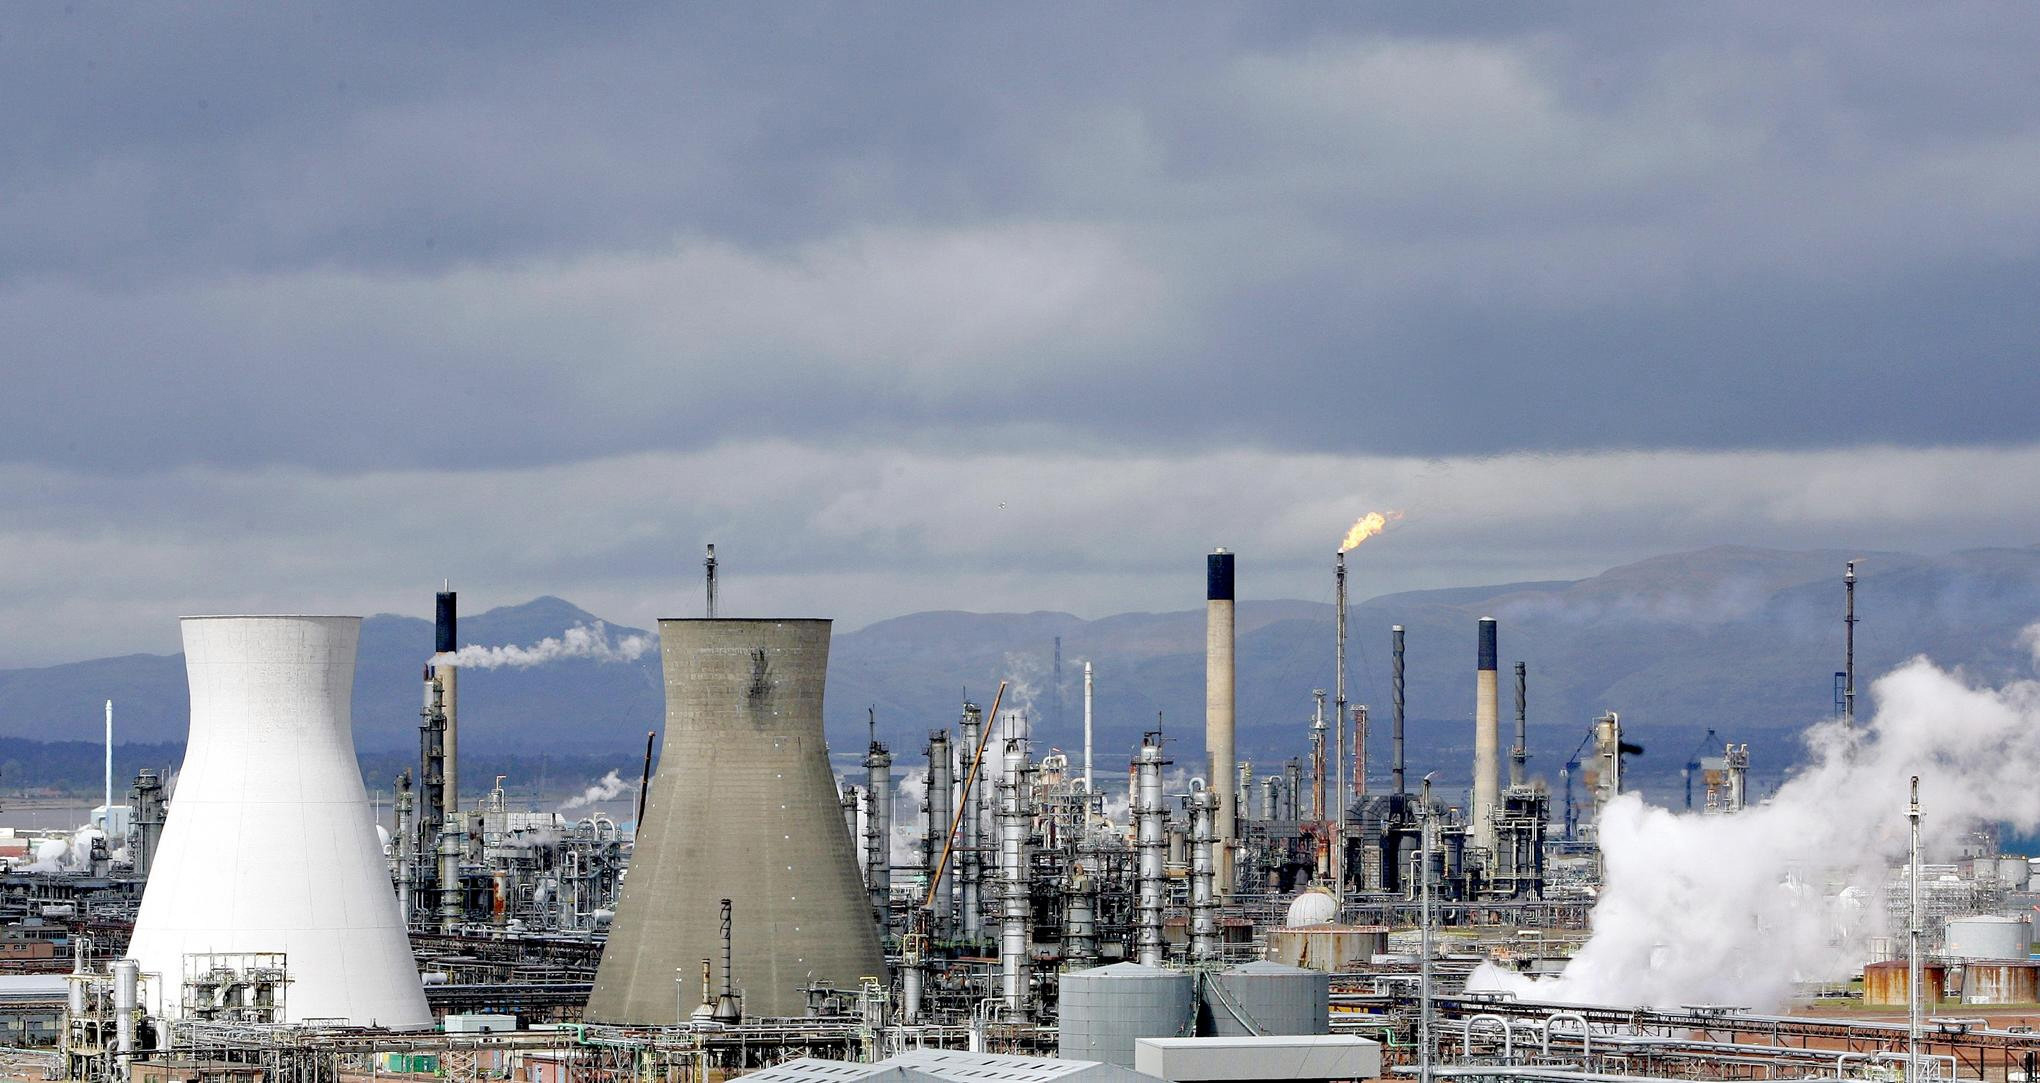 The INEOS refinery at Grangemouth, Scotland.